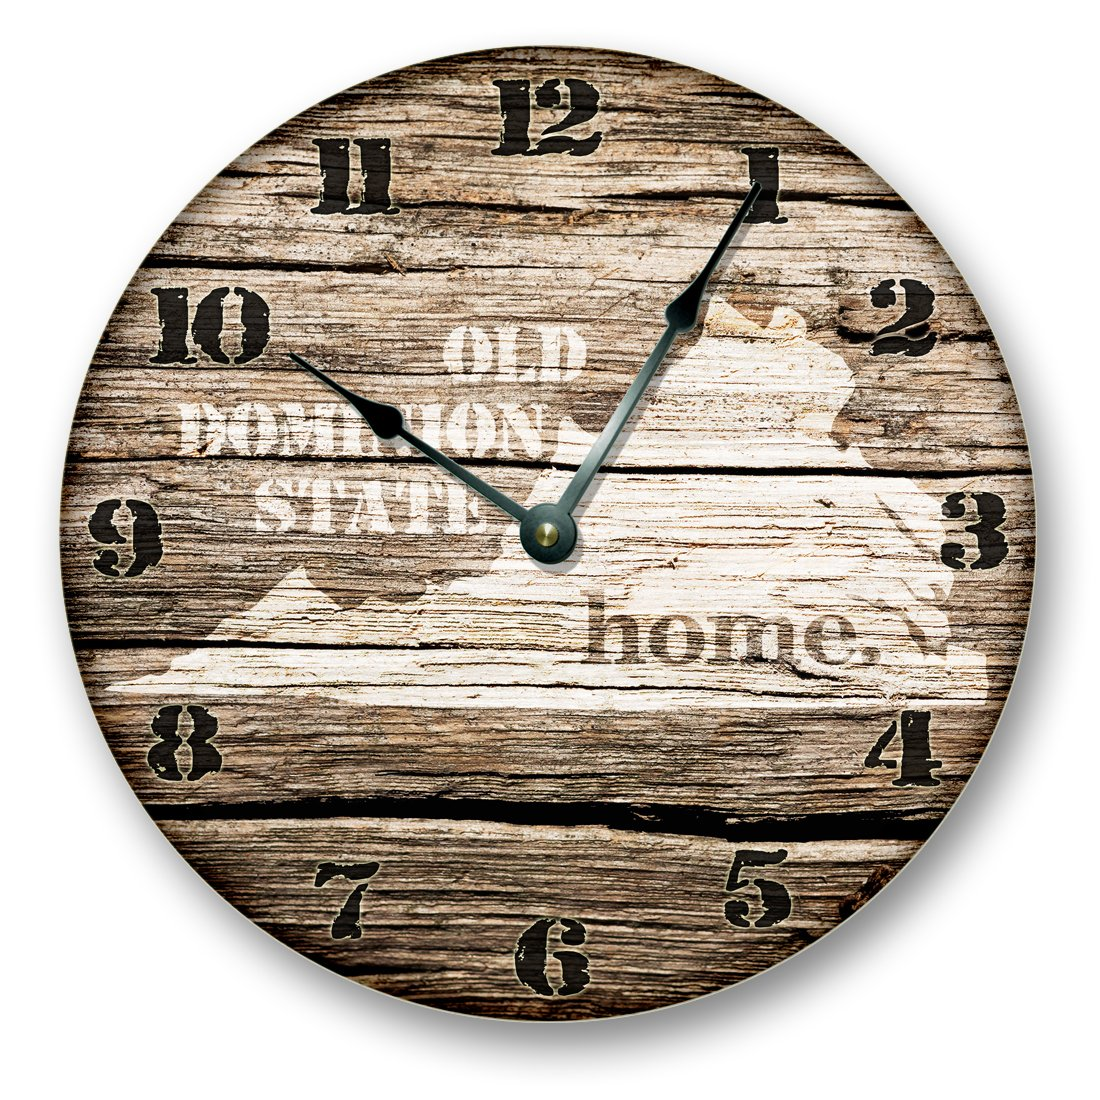 VIRGINIA STATE HOMELAND CLOCK -OLD DOMINION STATE - Large 10.5 Wall Clock - Printed Wood Image- VA_FT